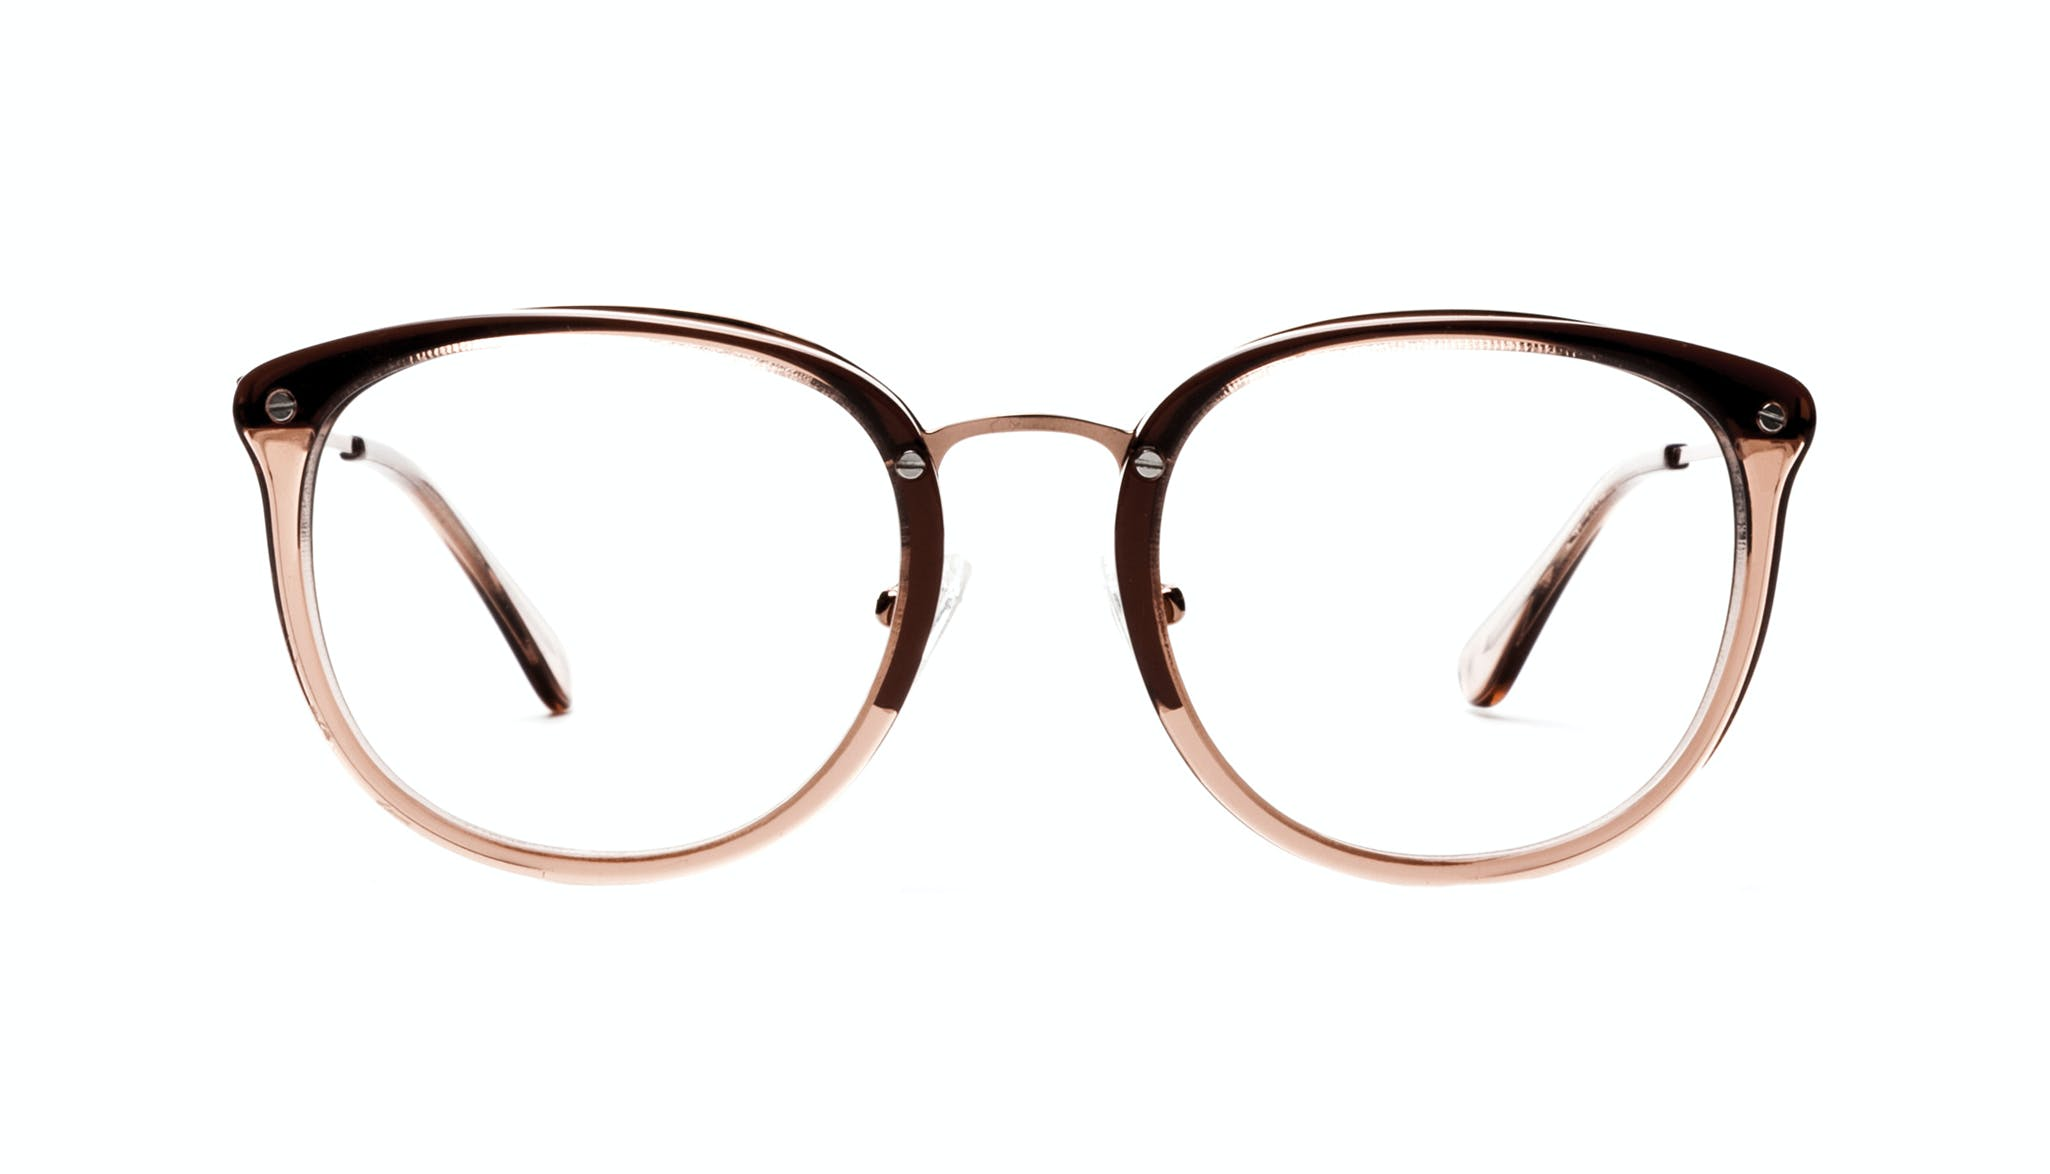 Affordable Fashion Glasses Square Round Eyeglasses Women Amaze Rose Front